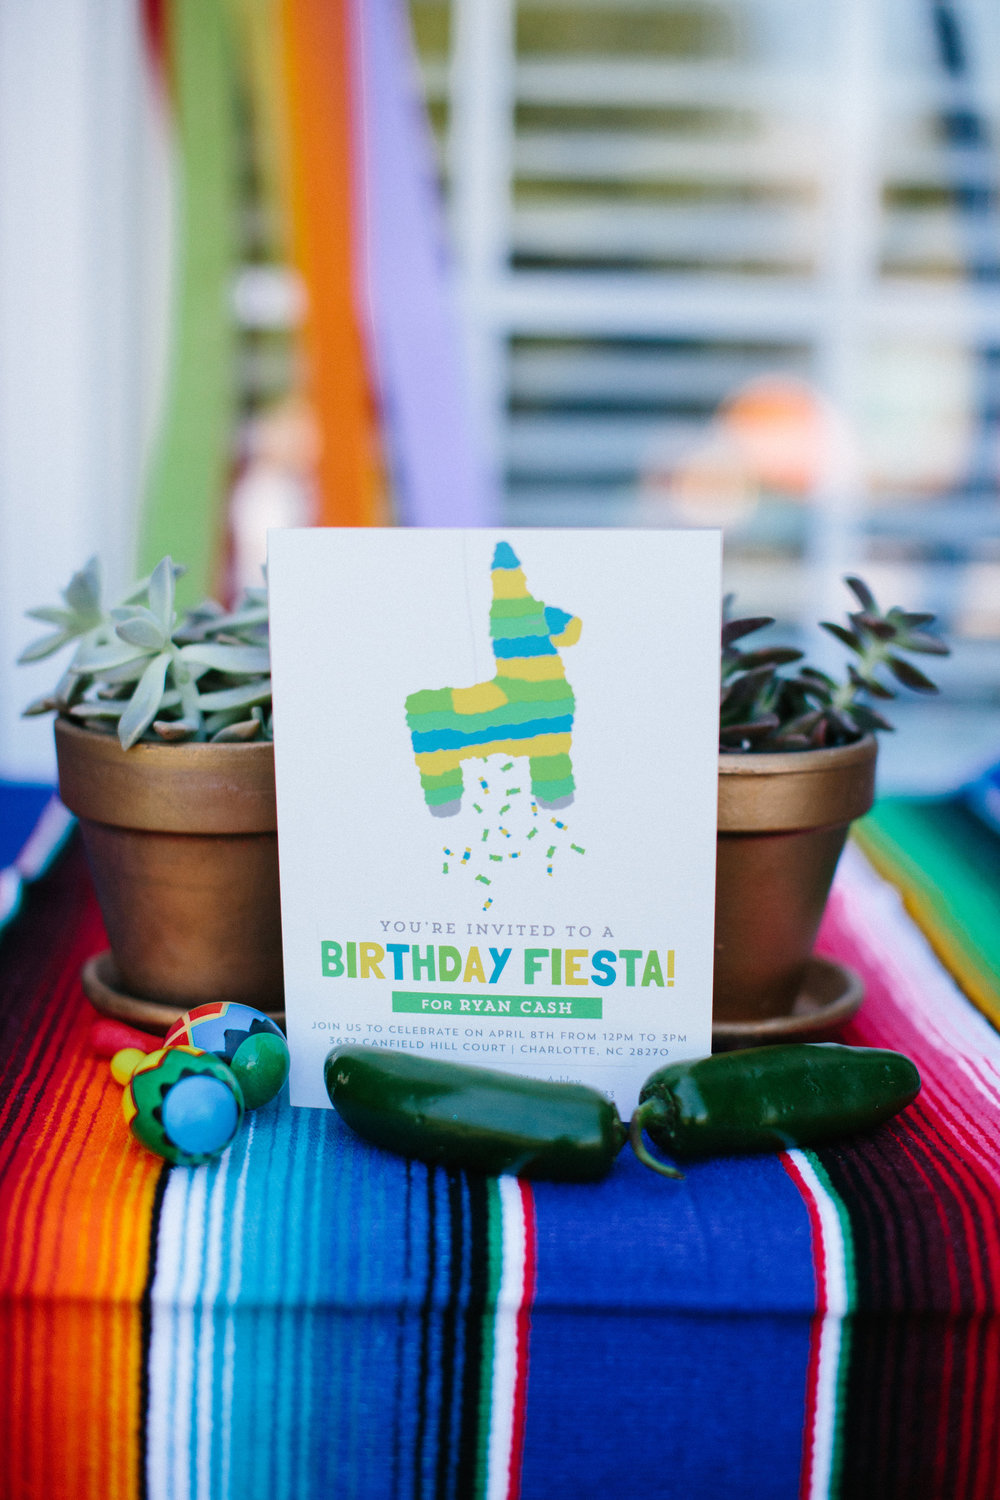 Fiesta first birthday party invitation minted